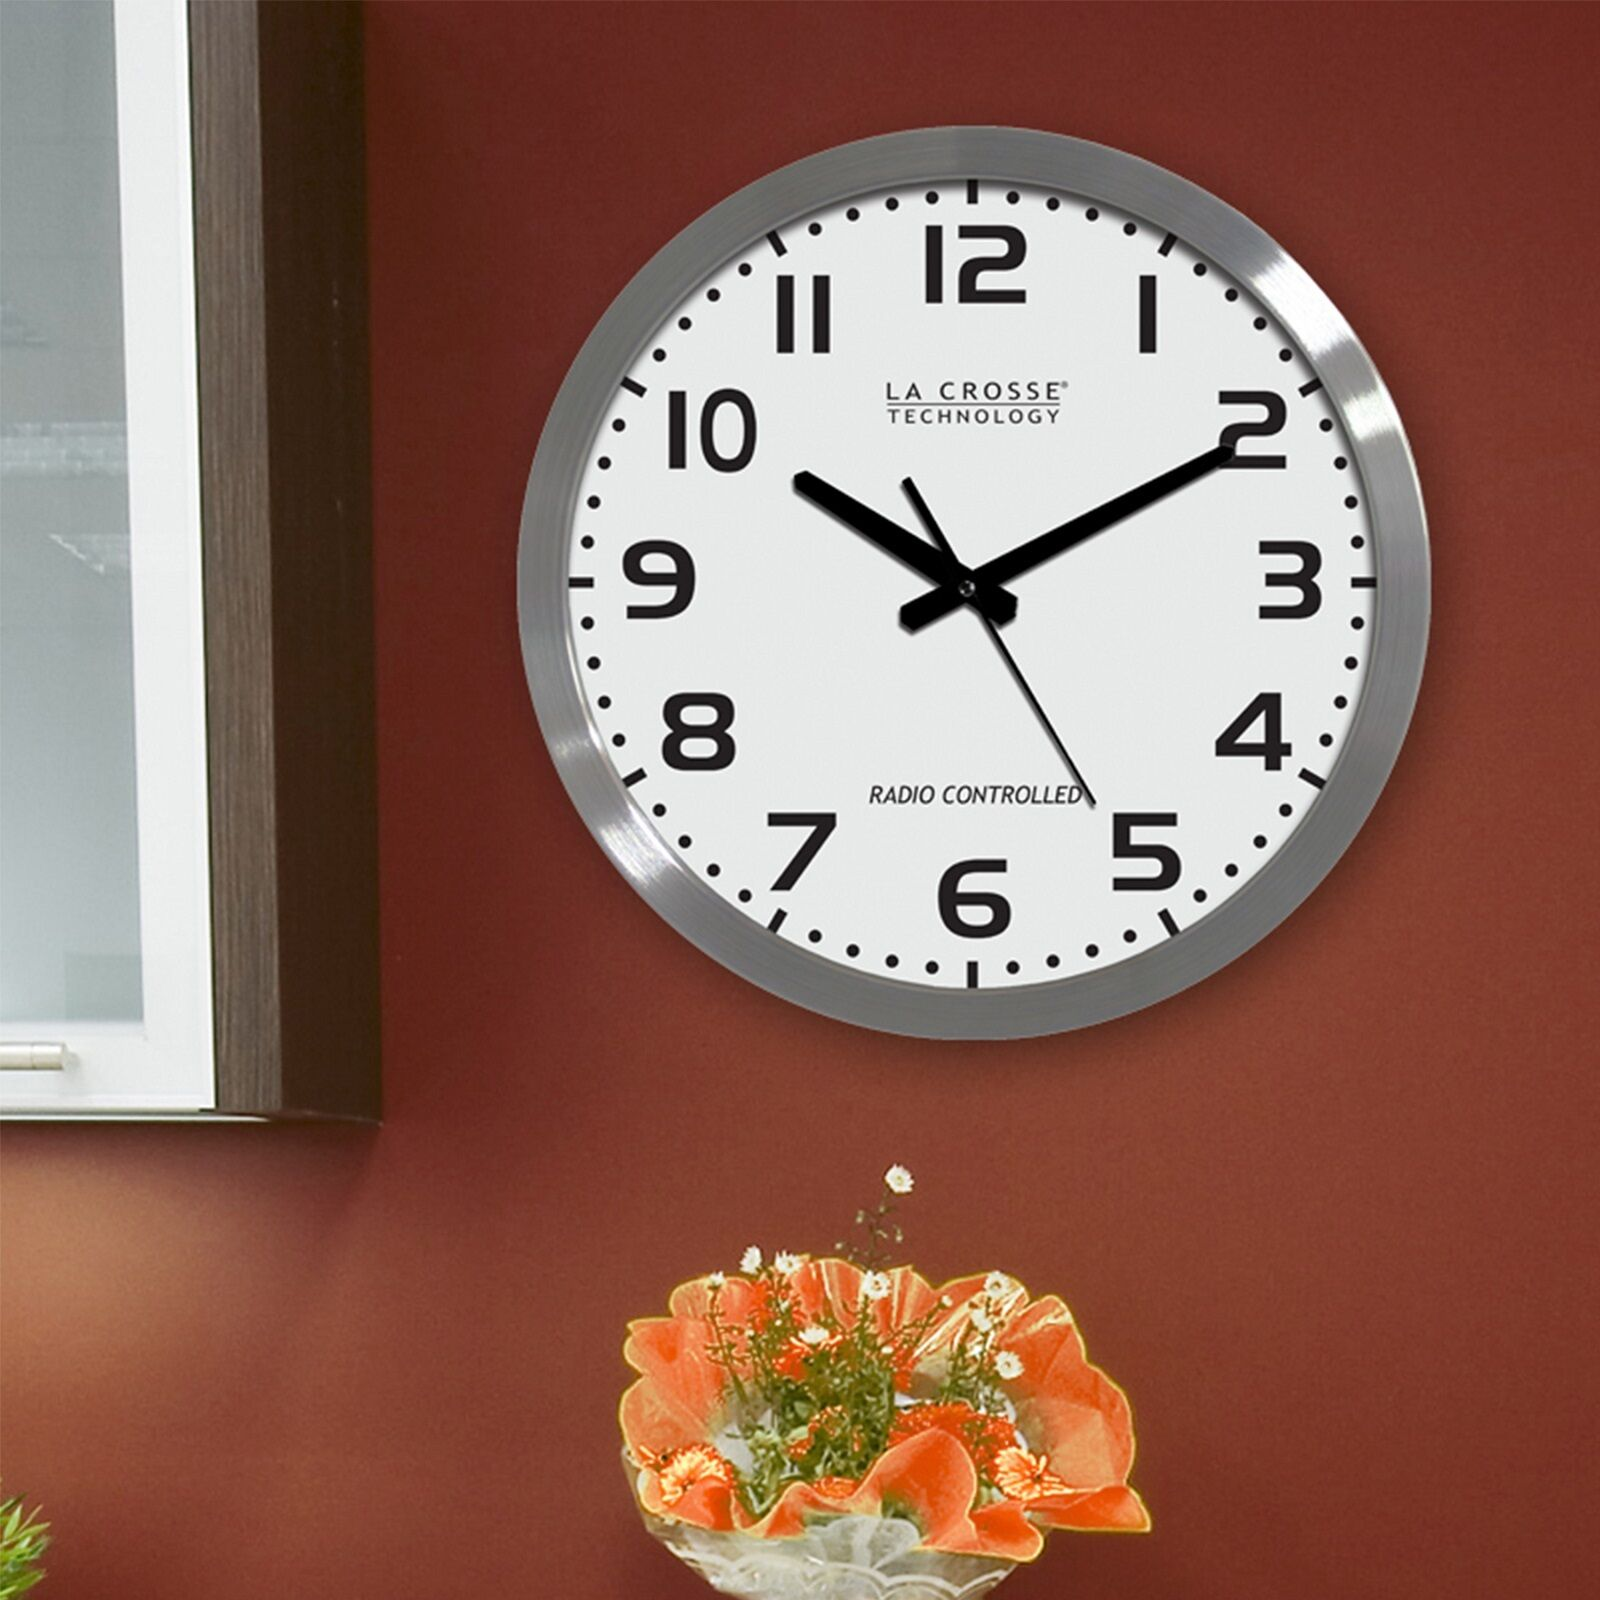 La crosse technology wt 3161wh dial stainless steel 16 inch analog la crosse technology wt 3161wh dial stainless steel 16 inch analog atomic clock ebay amipublicfo Gallery